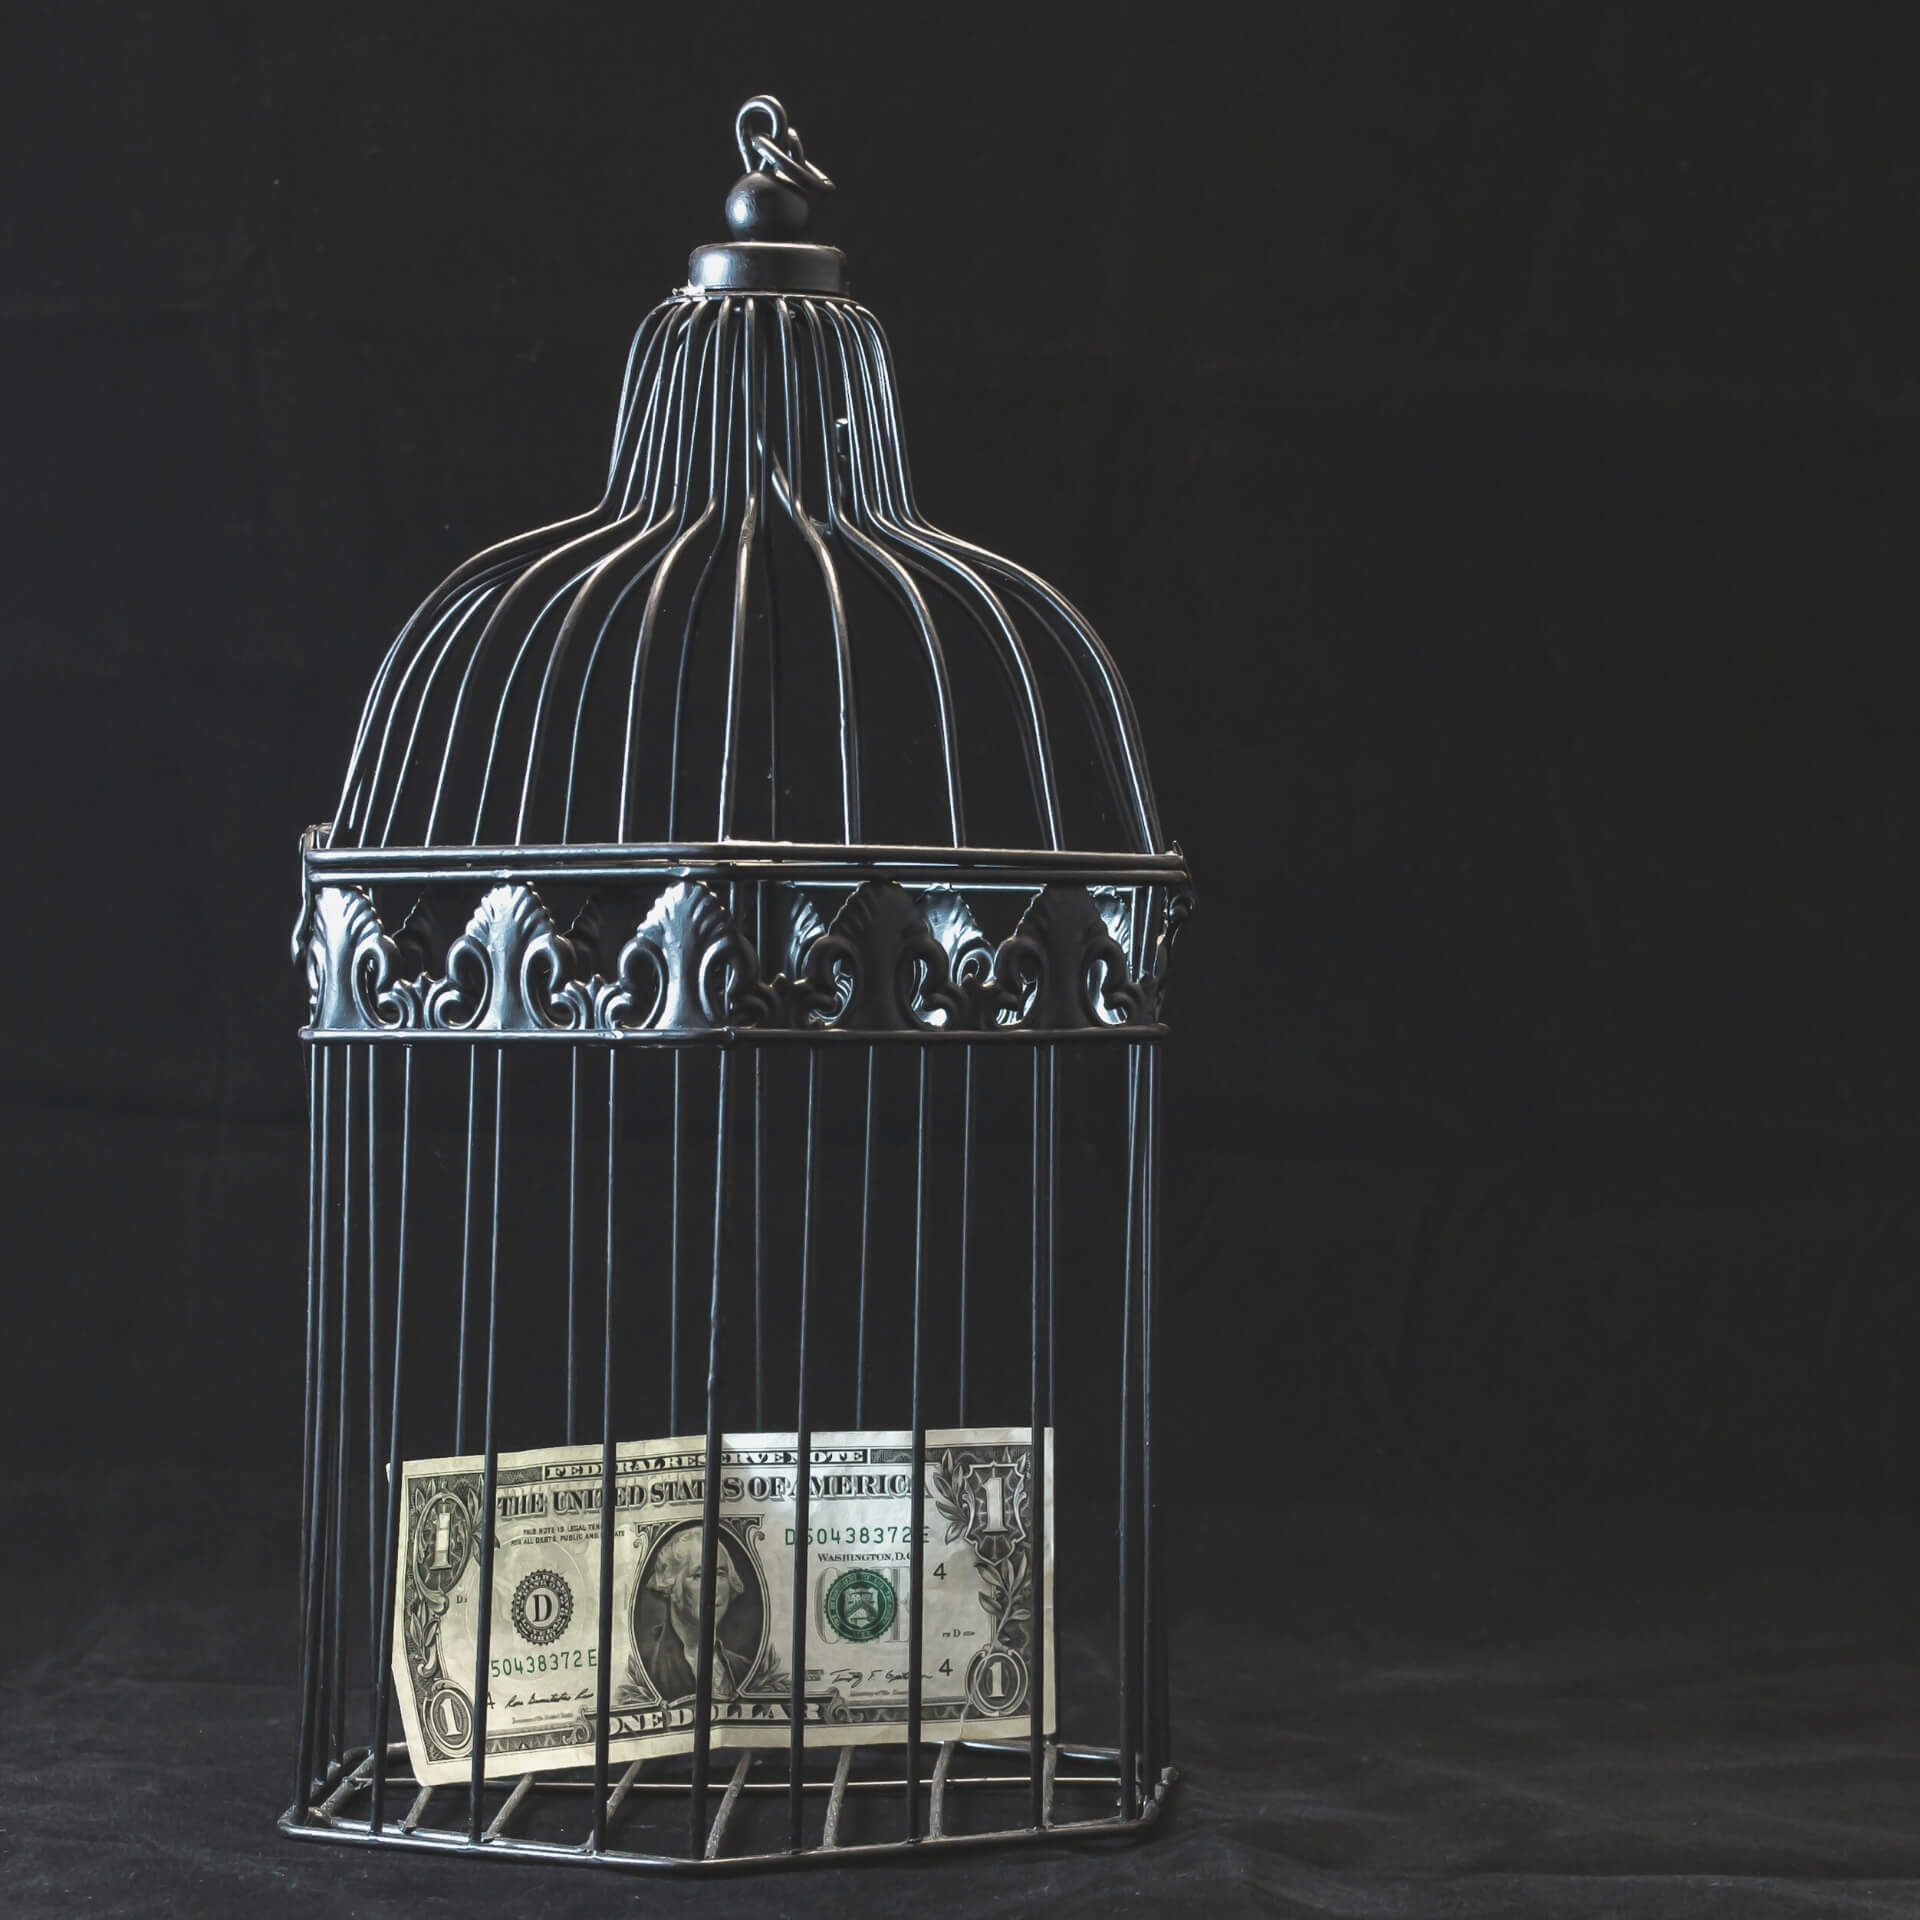 Best Free Website: $1 bill trapped in a bid cage.